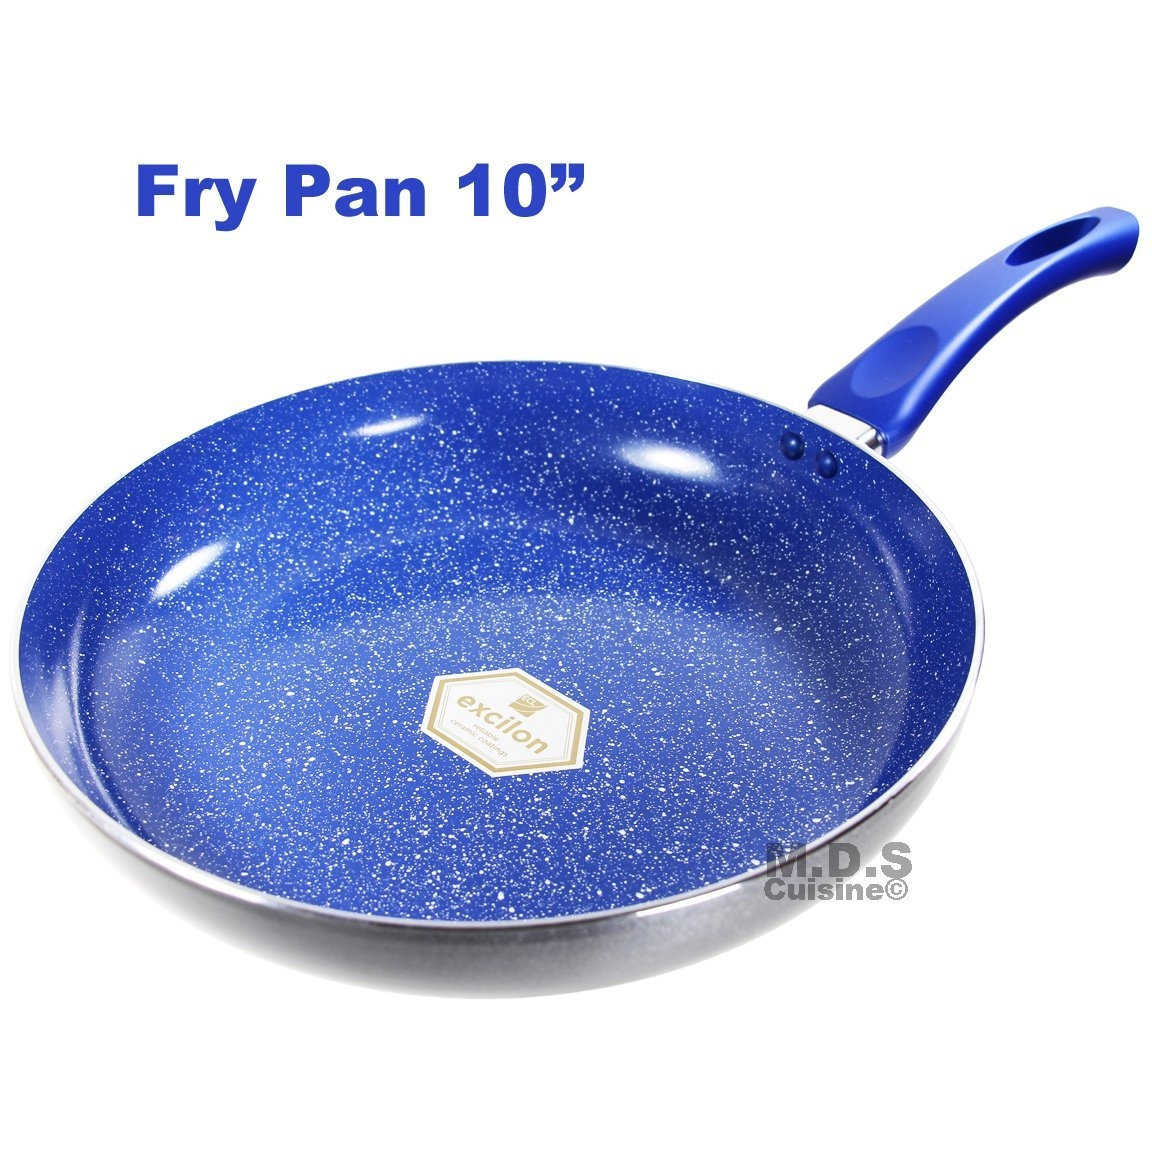 "Fry Pan 10"" Inch Ceramic Marble Coated Non Stick Blue Stone ECO Friendly Skillet Griddle"